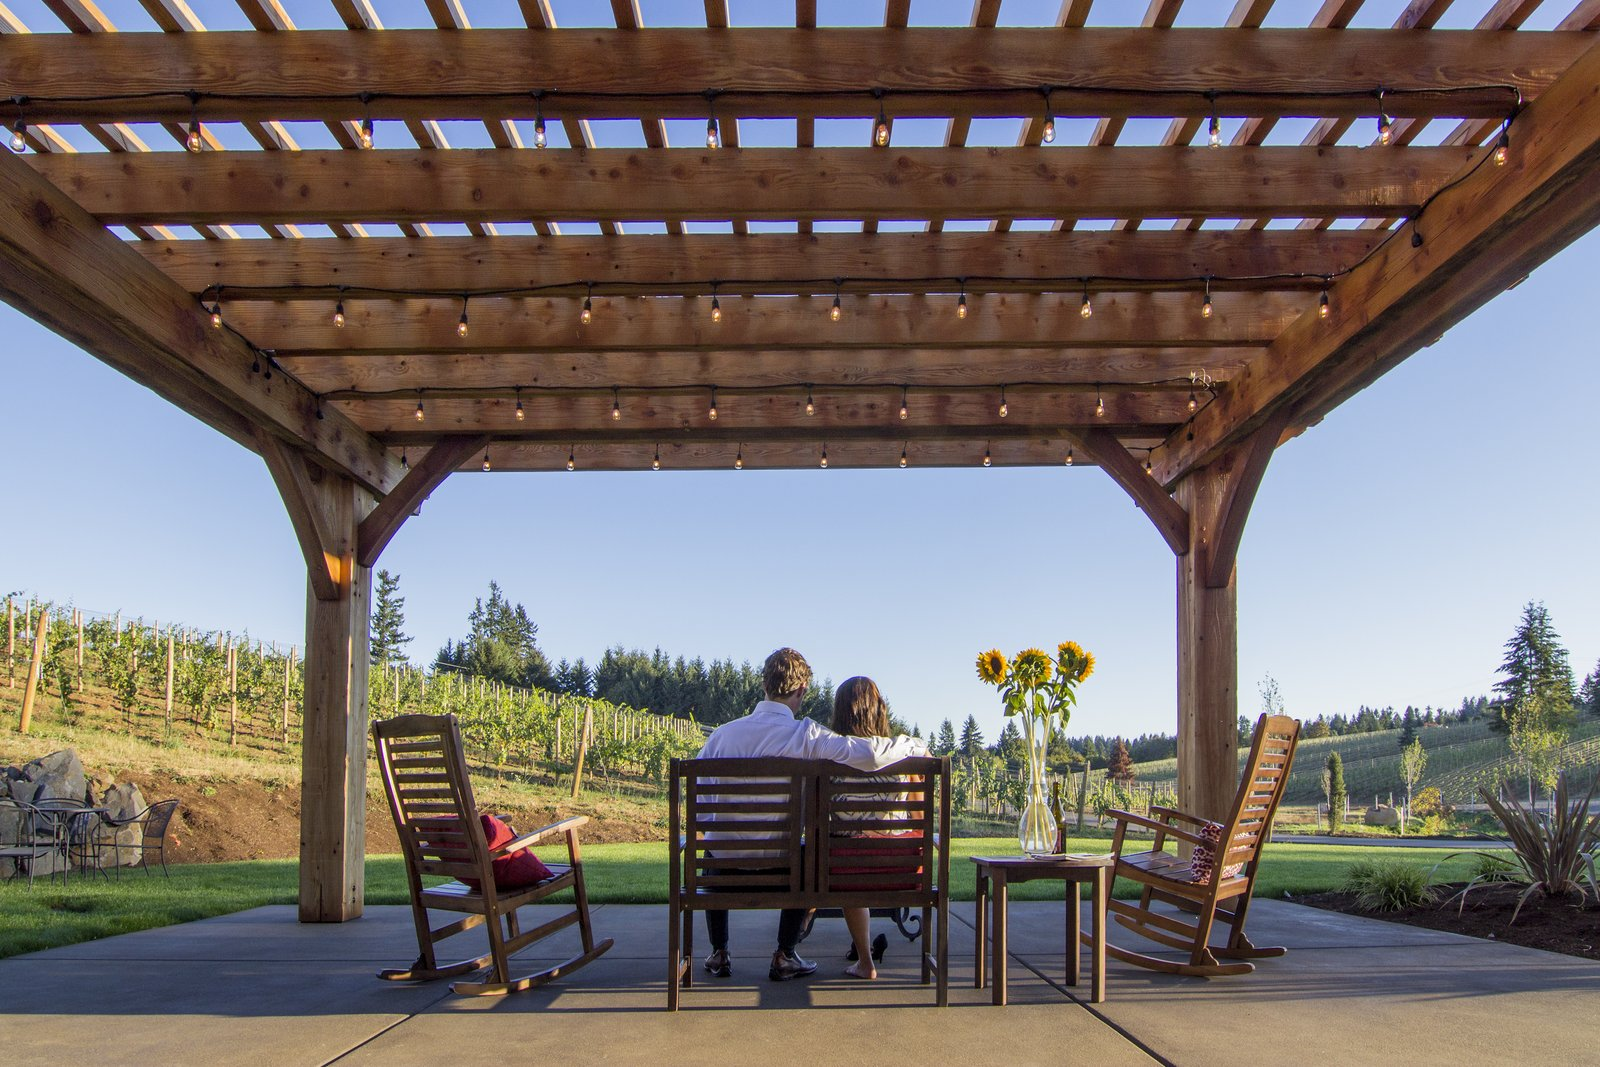 The Barrel House tasting room serves as a community center for Tumwater. The new pergola creates an outdoor room that can play host to wine tastings and private events.  Photo 2 of 7 in Sustainable Redwood Stars in an Oregon Architectural Showcase